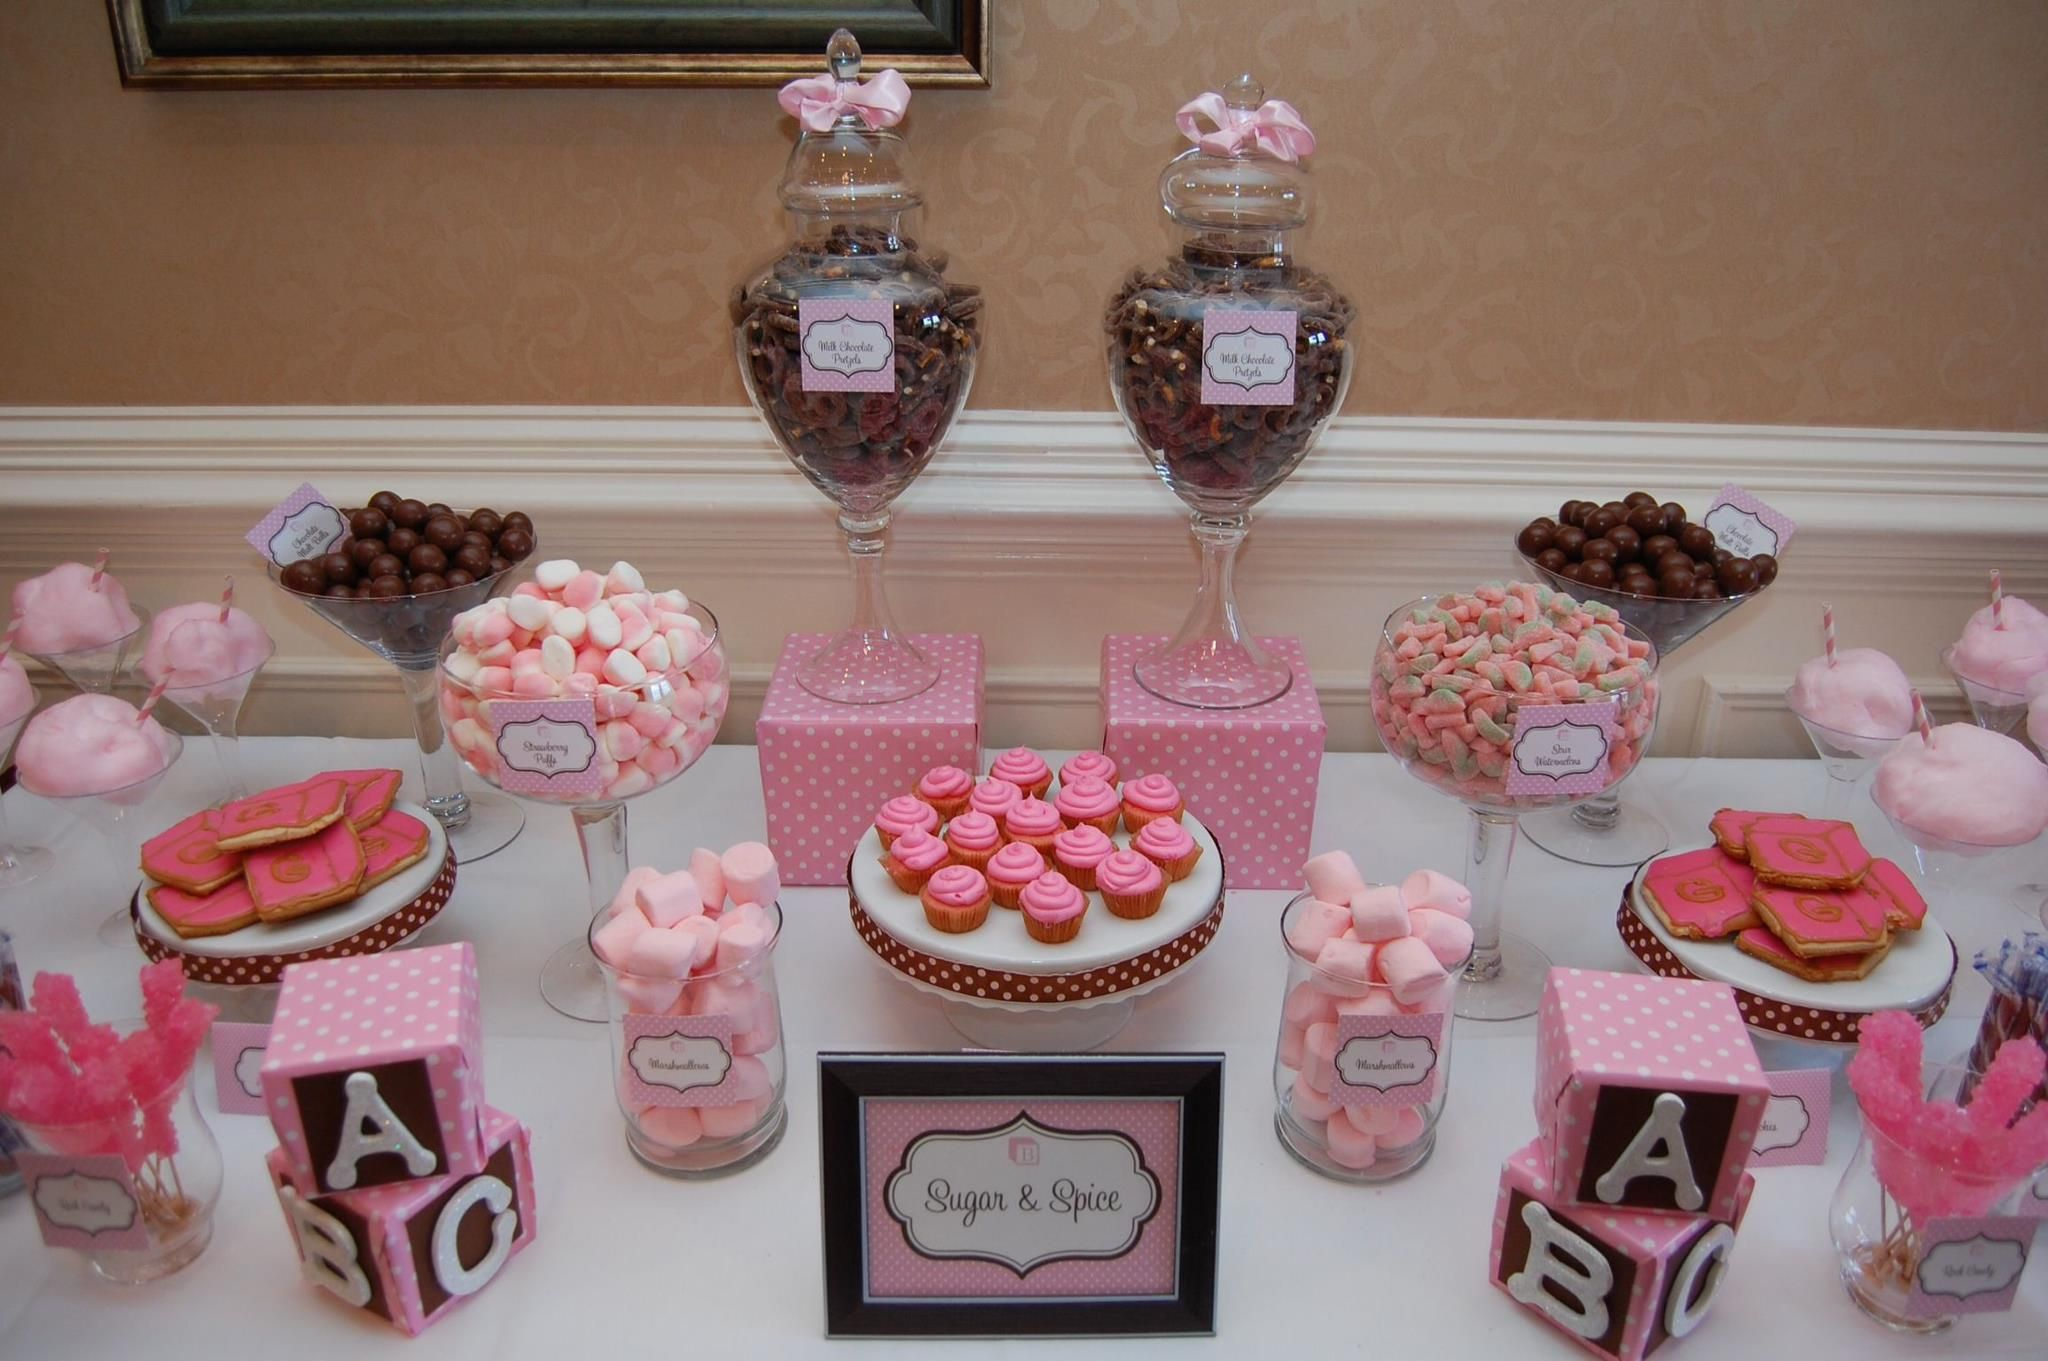 Sugar Spice Baby Shower Ideas | Guess The Spices For Sugar And Spice Themed  Baby ... | Baby Shower ... | Baby Shower Ideas | Pinterest | Babies And Baby  ...